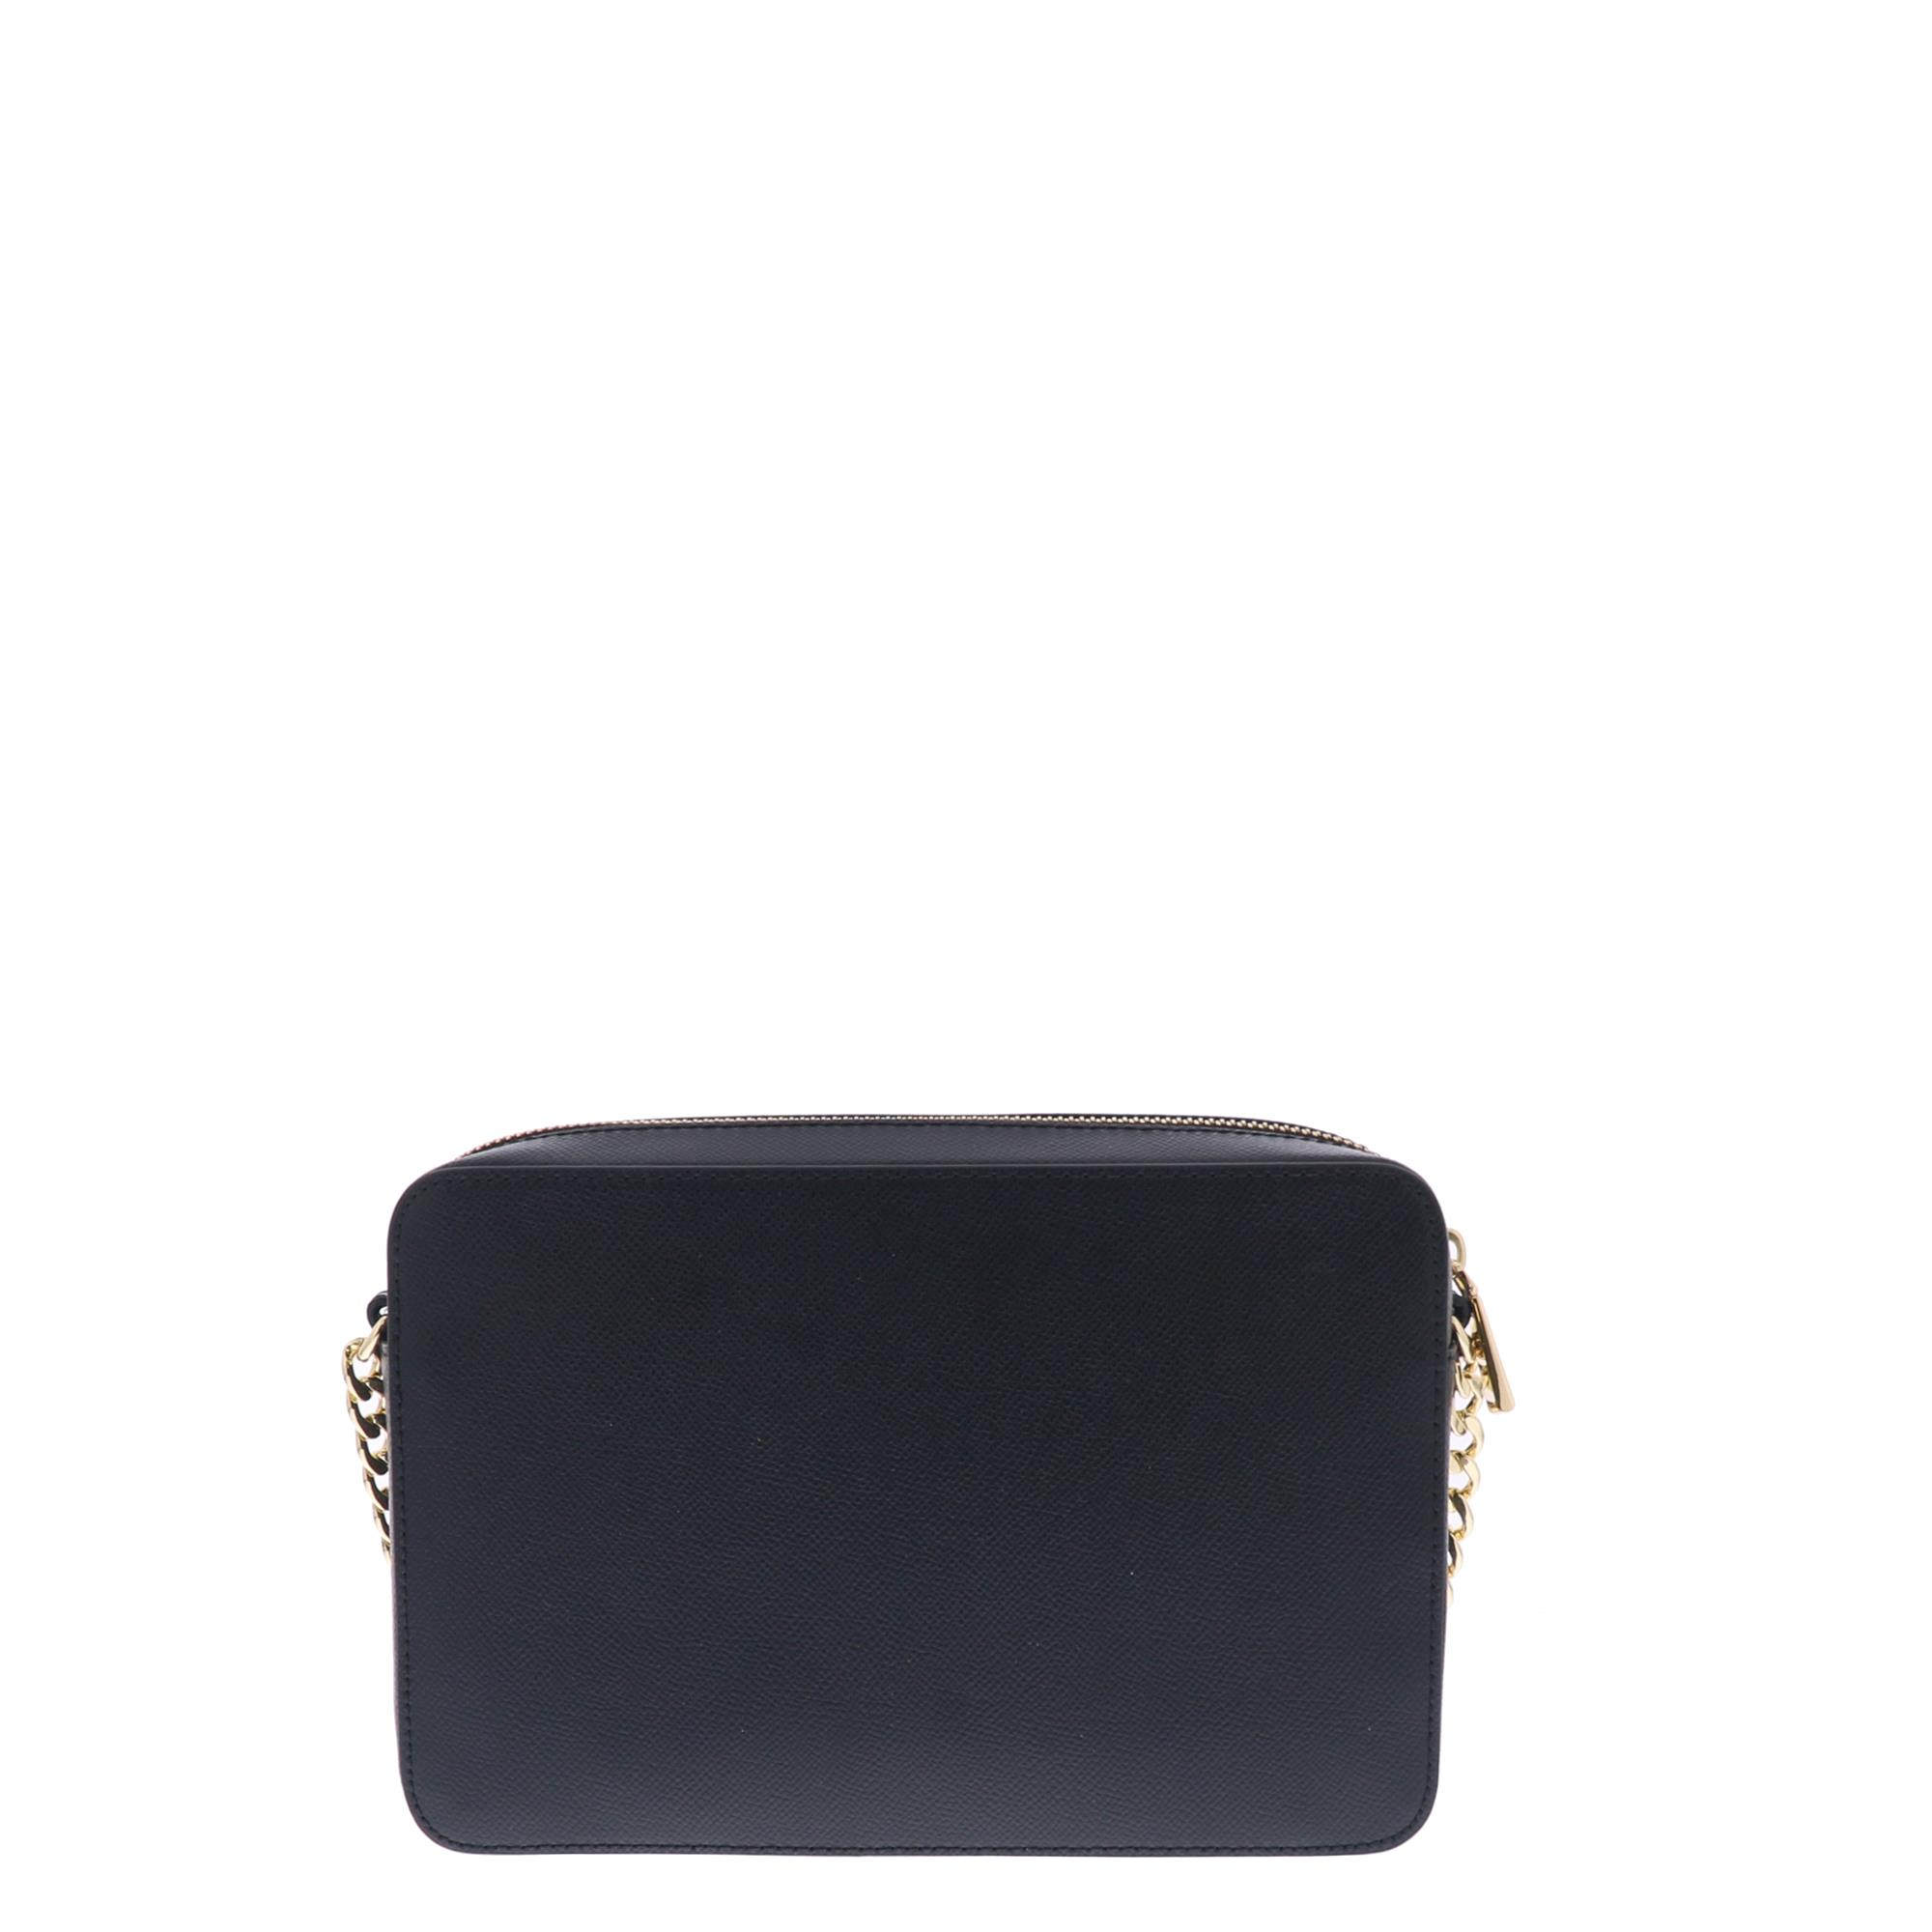 Michael KorsEast West Large Crossbody Black